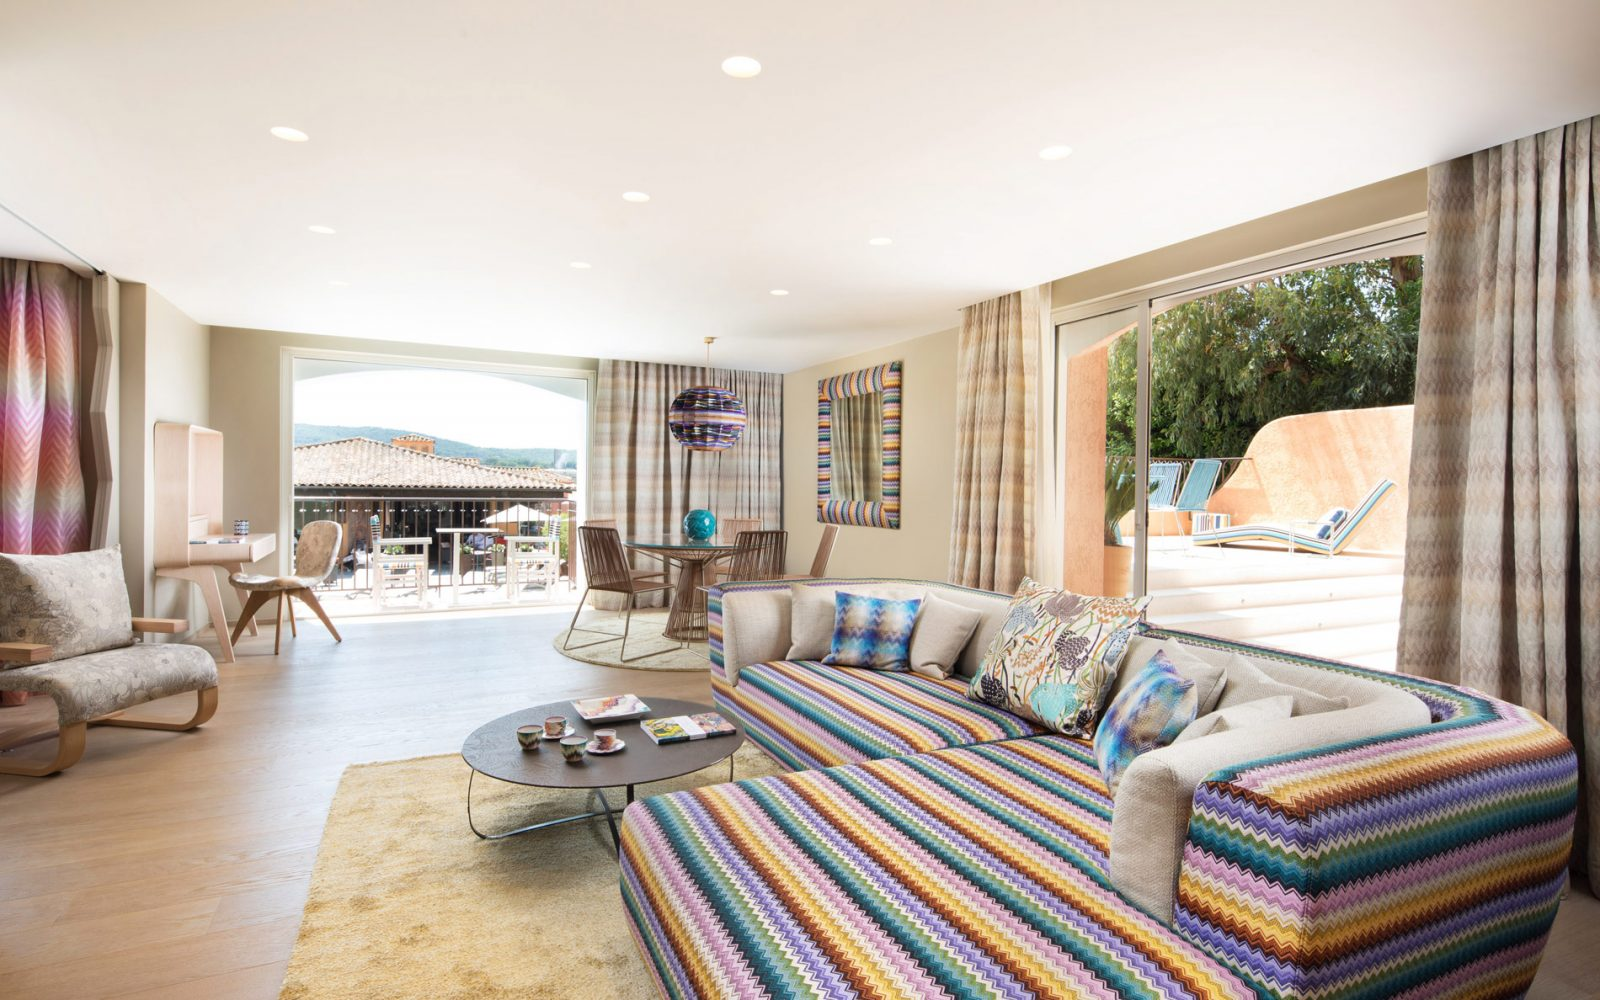 Missoni Suite at the Byblos Hotel